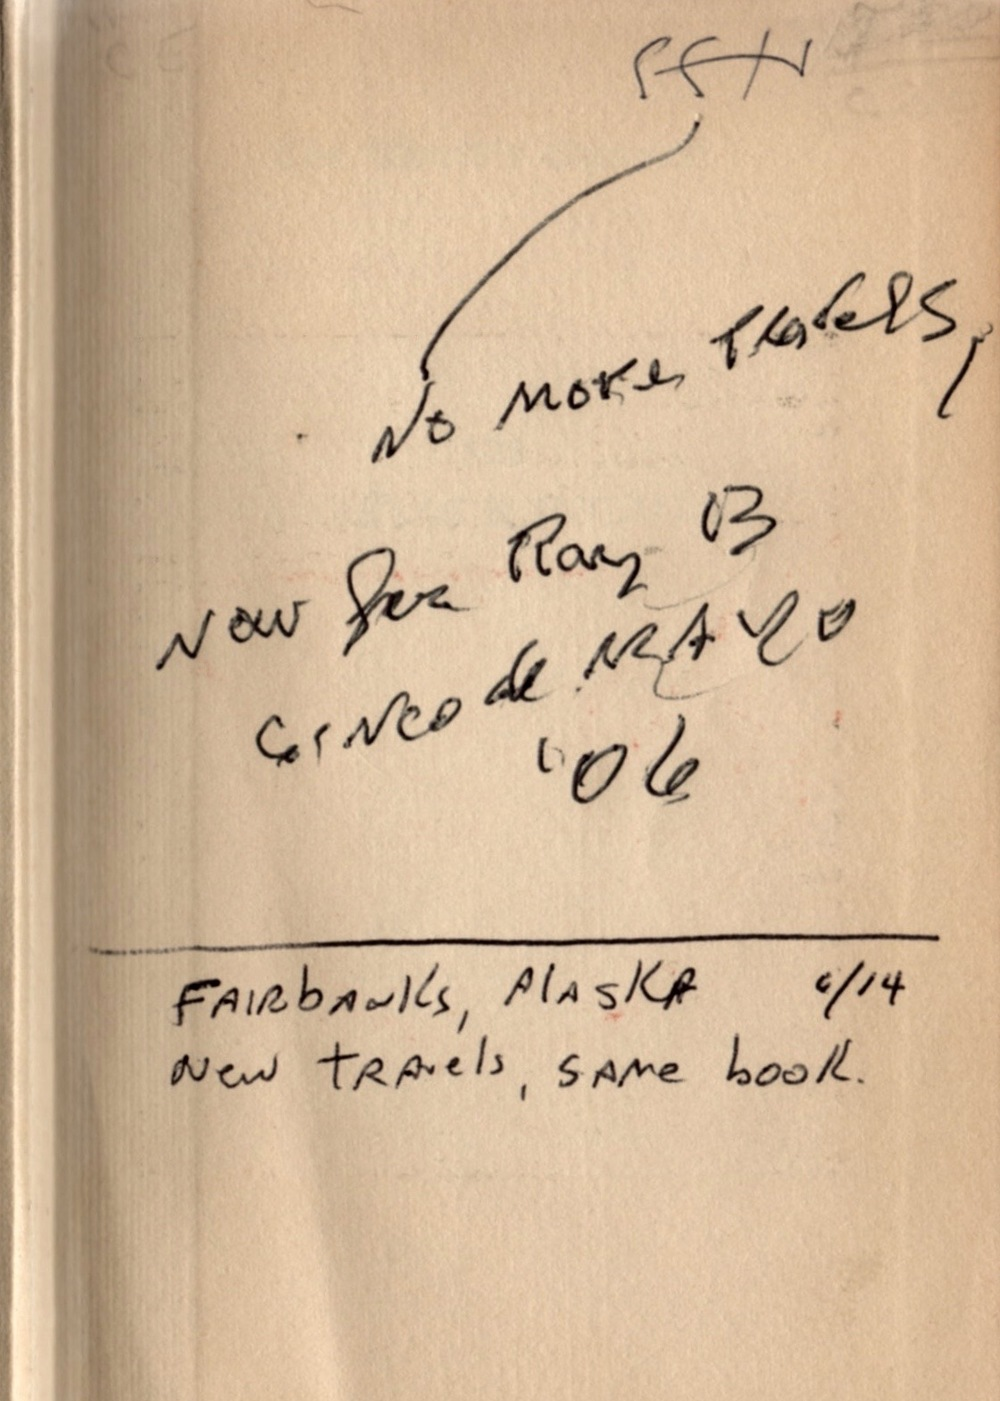 The inscription from the FEP of Chuck's Sherlock Holmes Selected Stories.